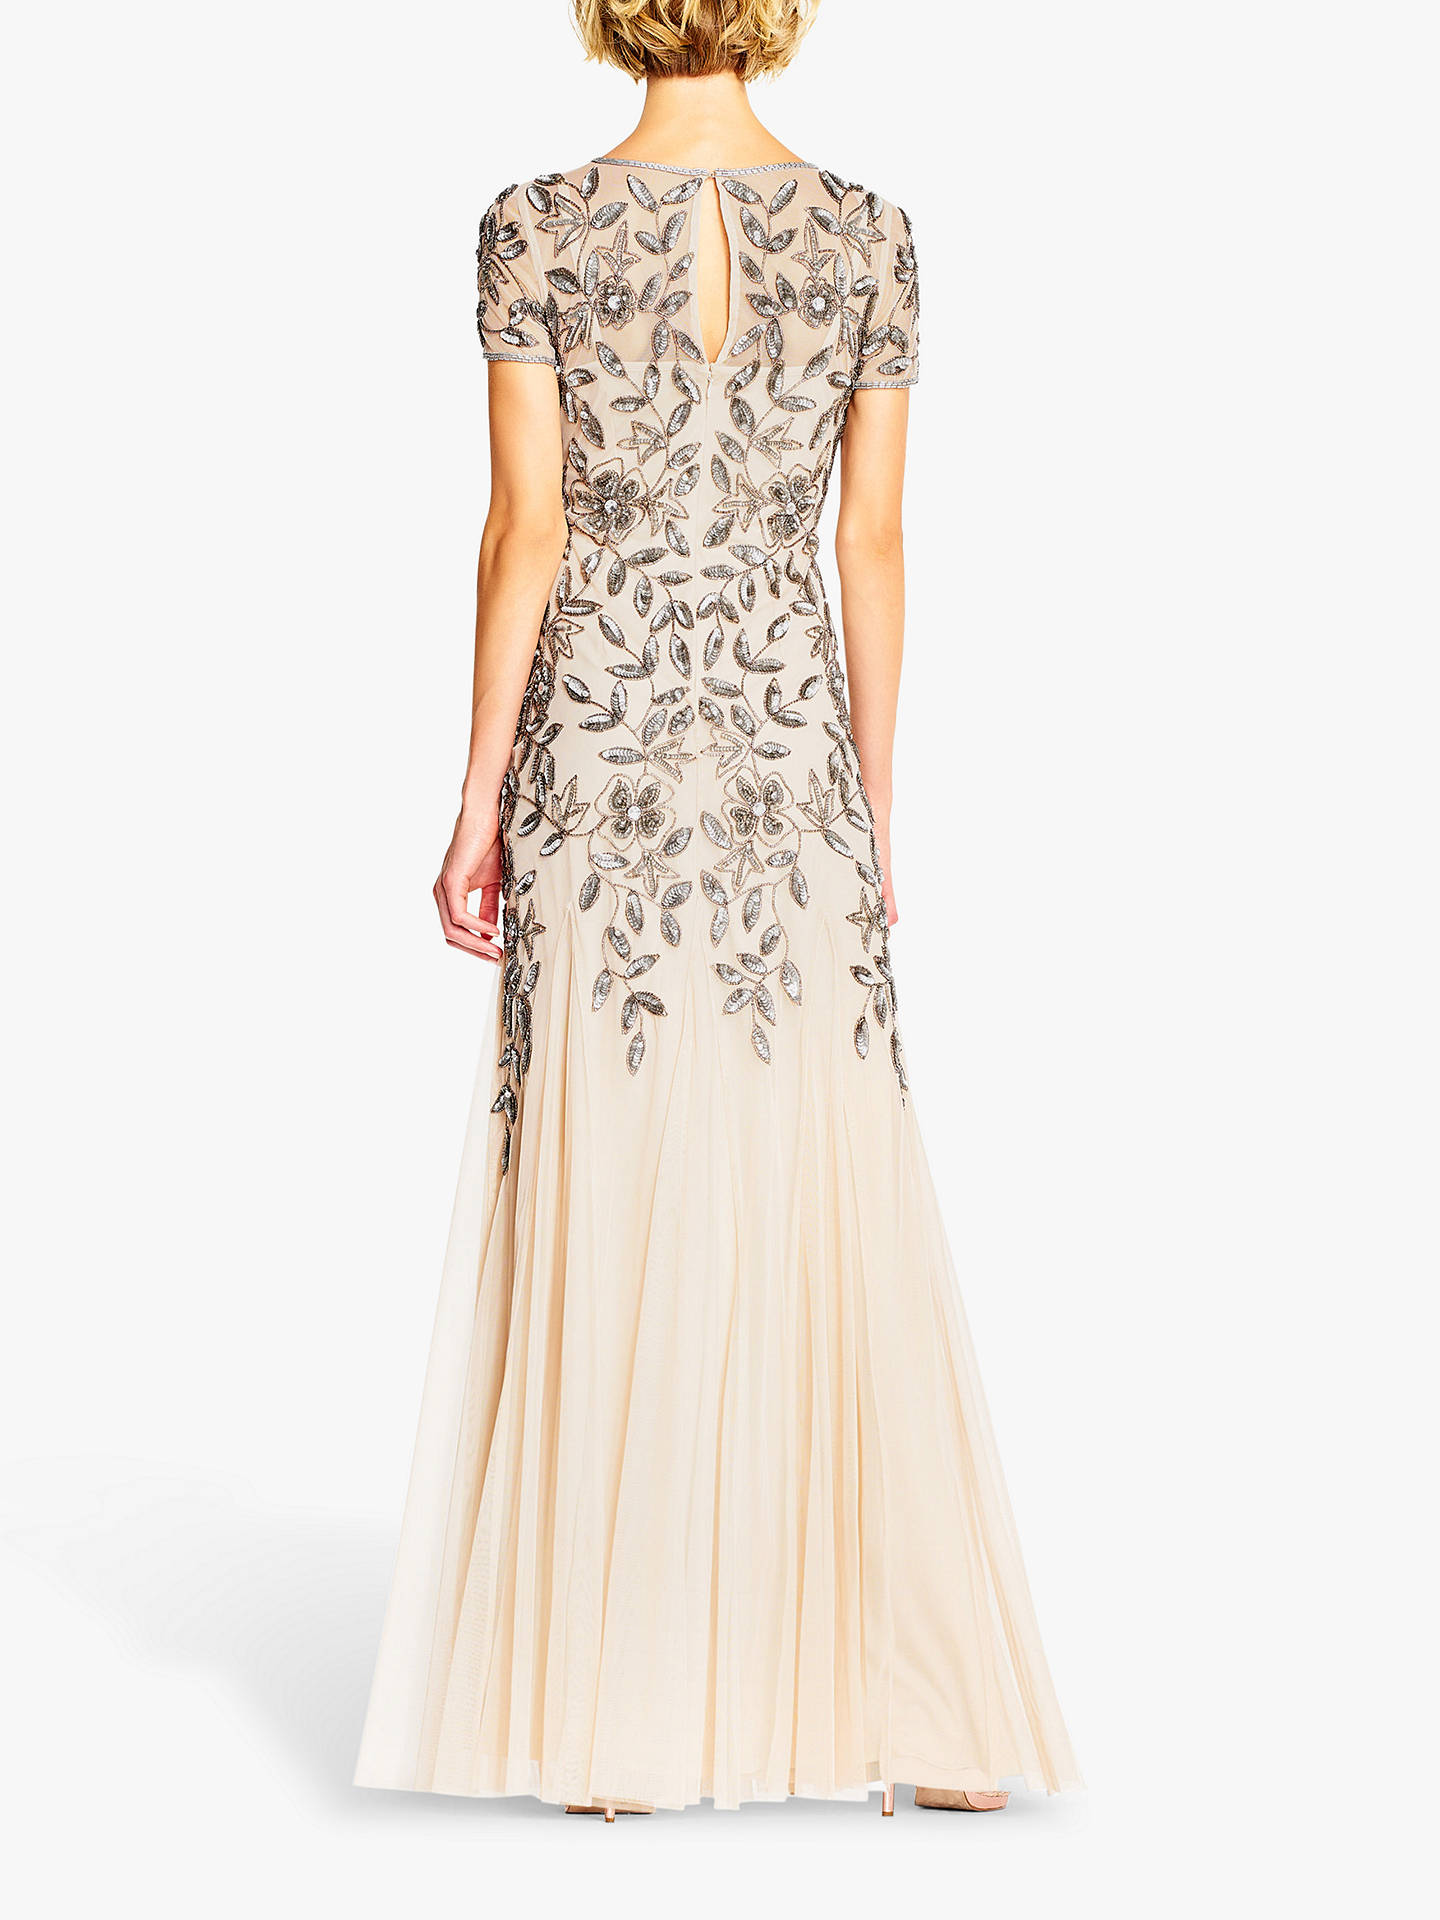 Adrianna Papell Floral Beaded Dress, TaupePink at John